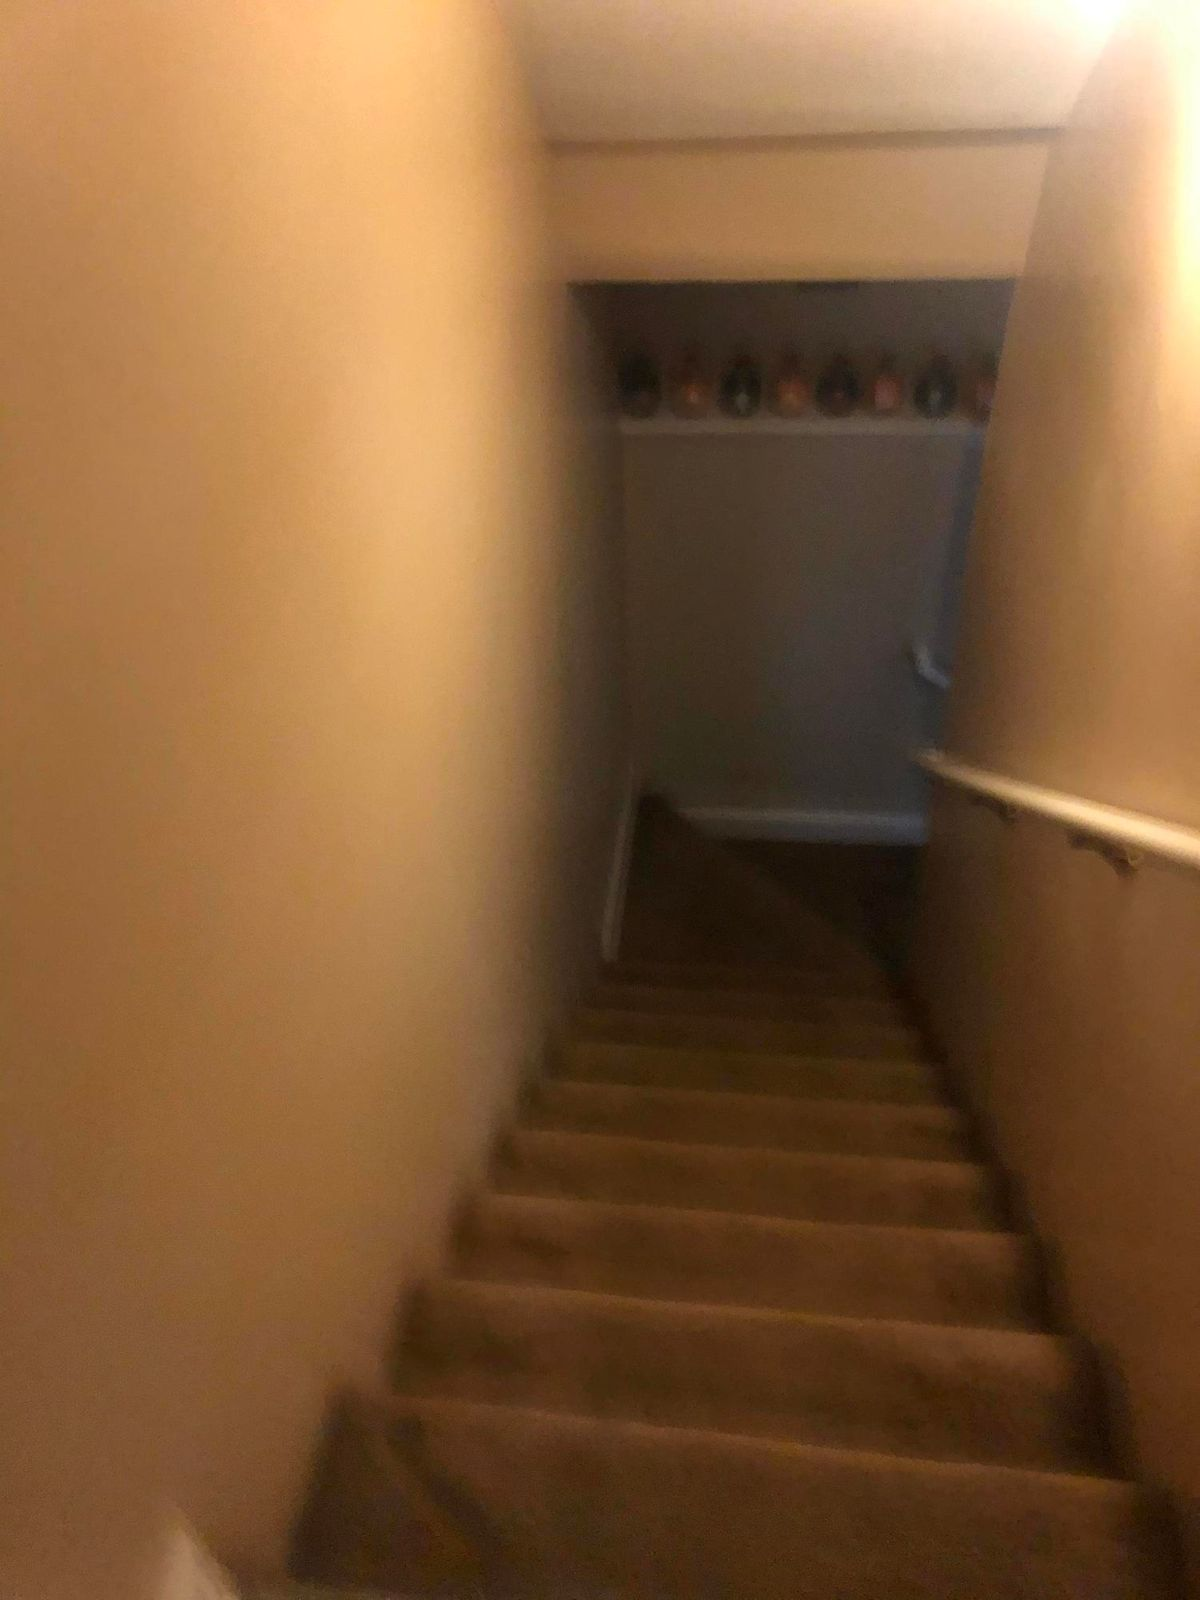 Stairs for downstairs